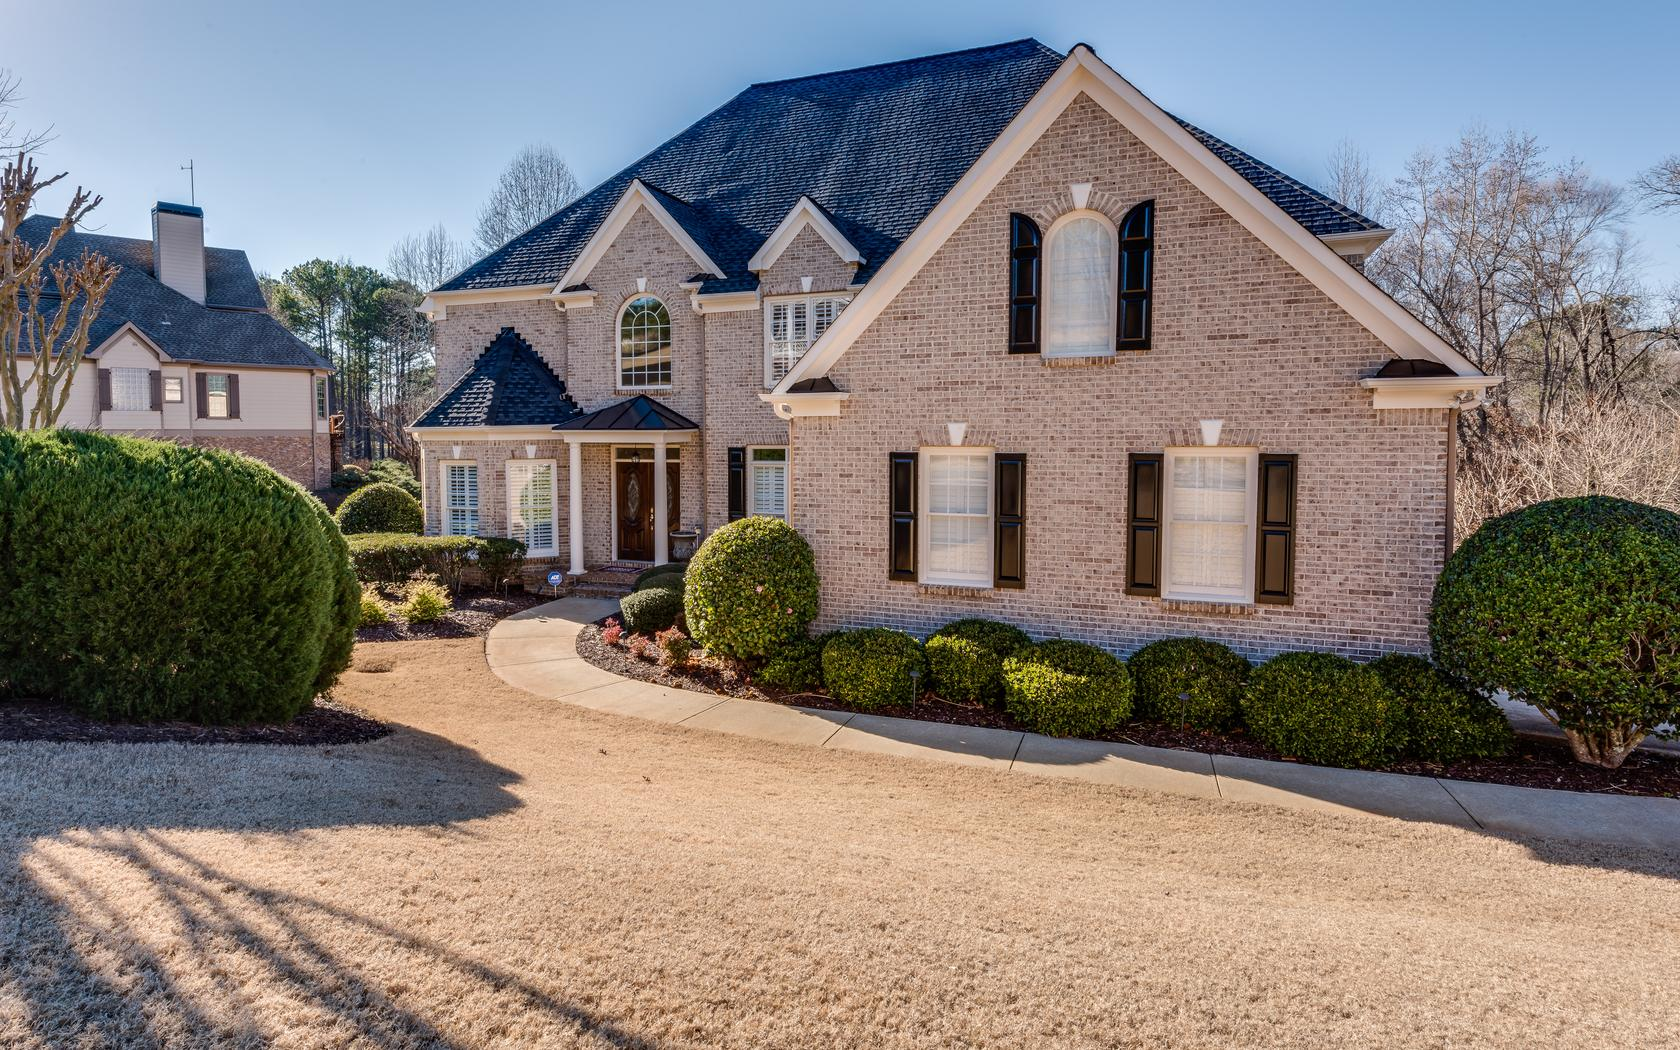 custom built brick home boasting golf course lot